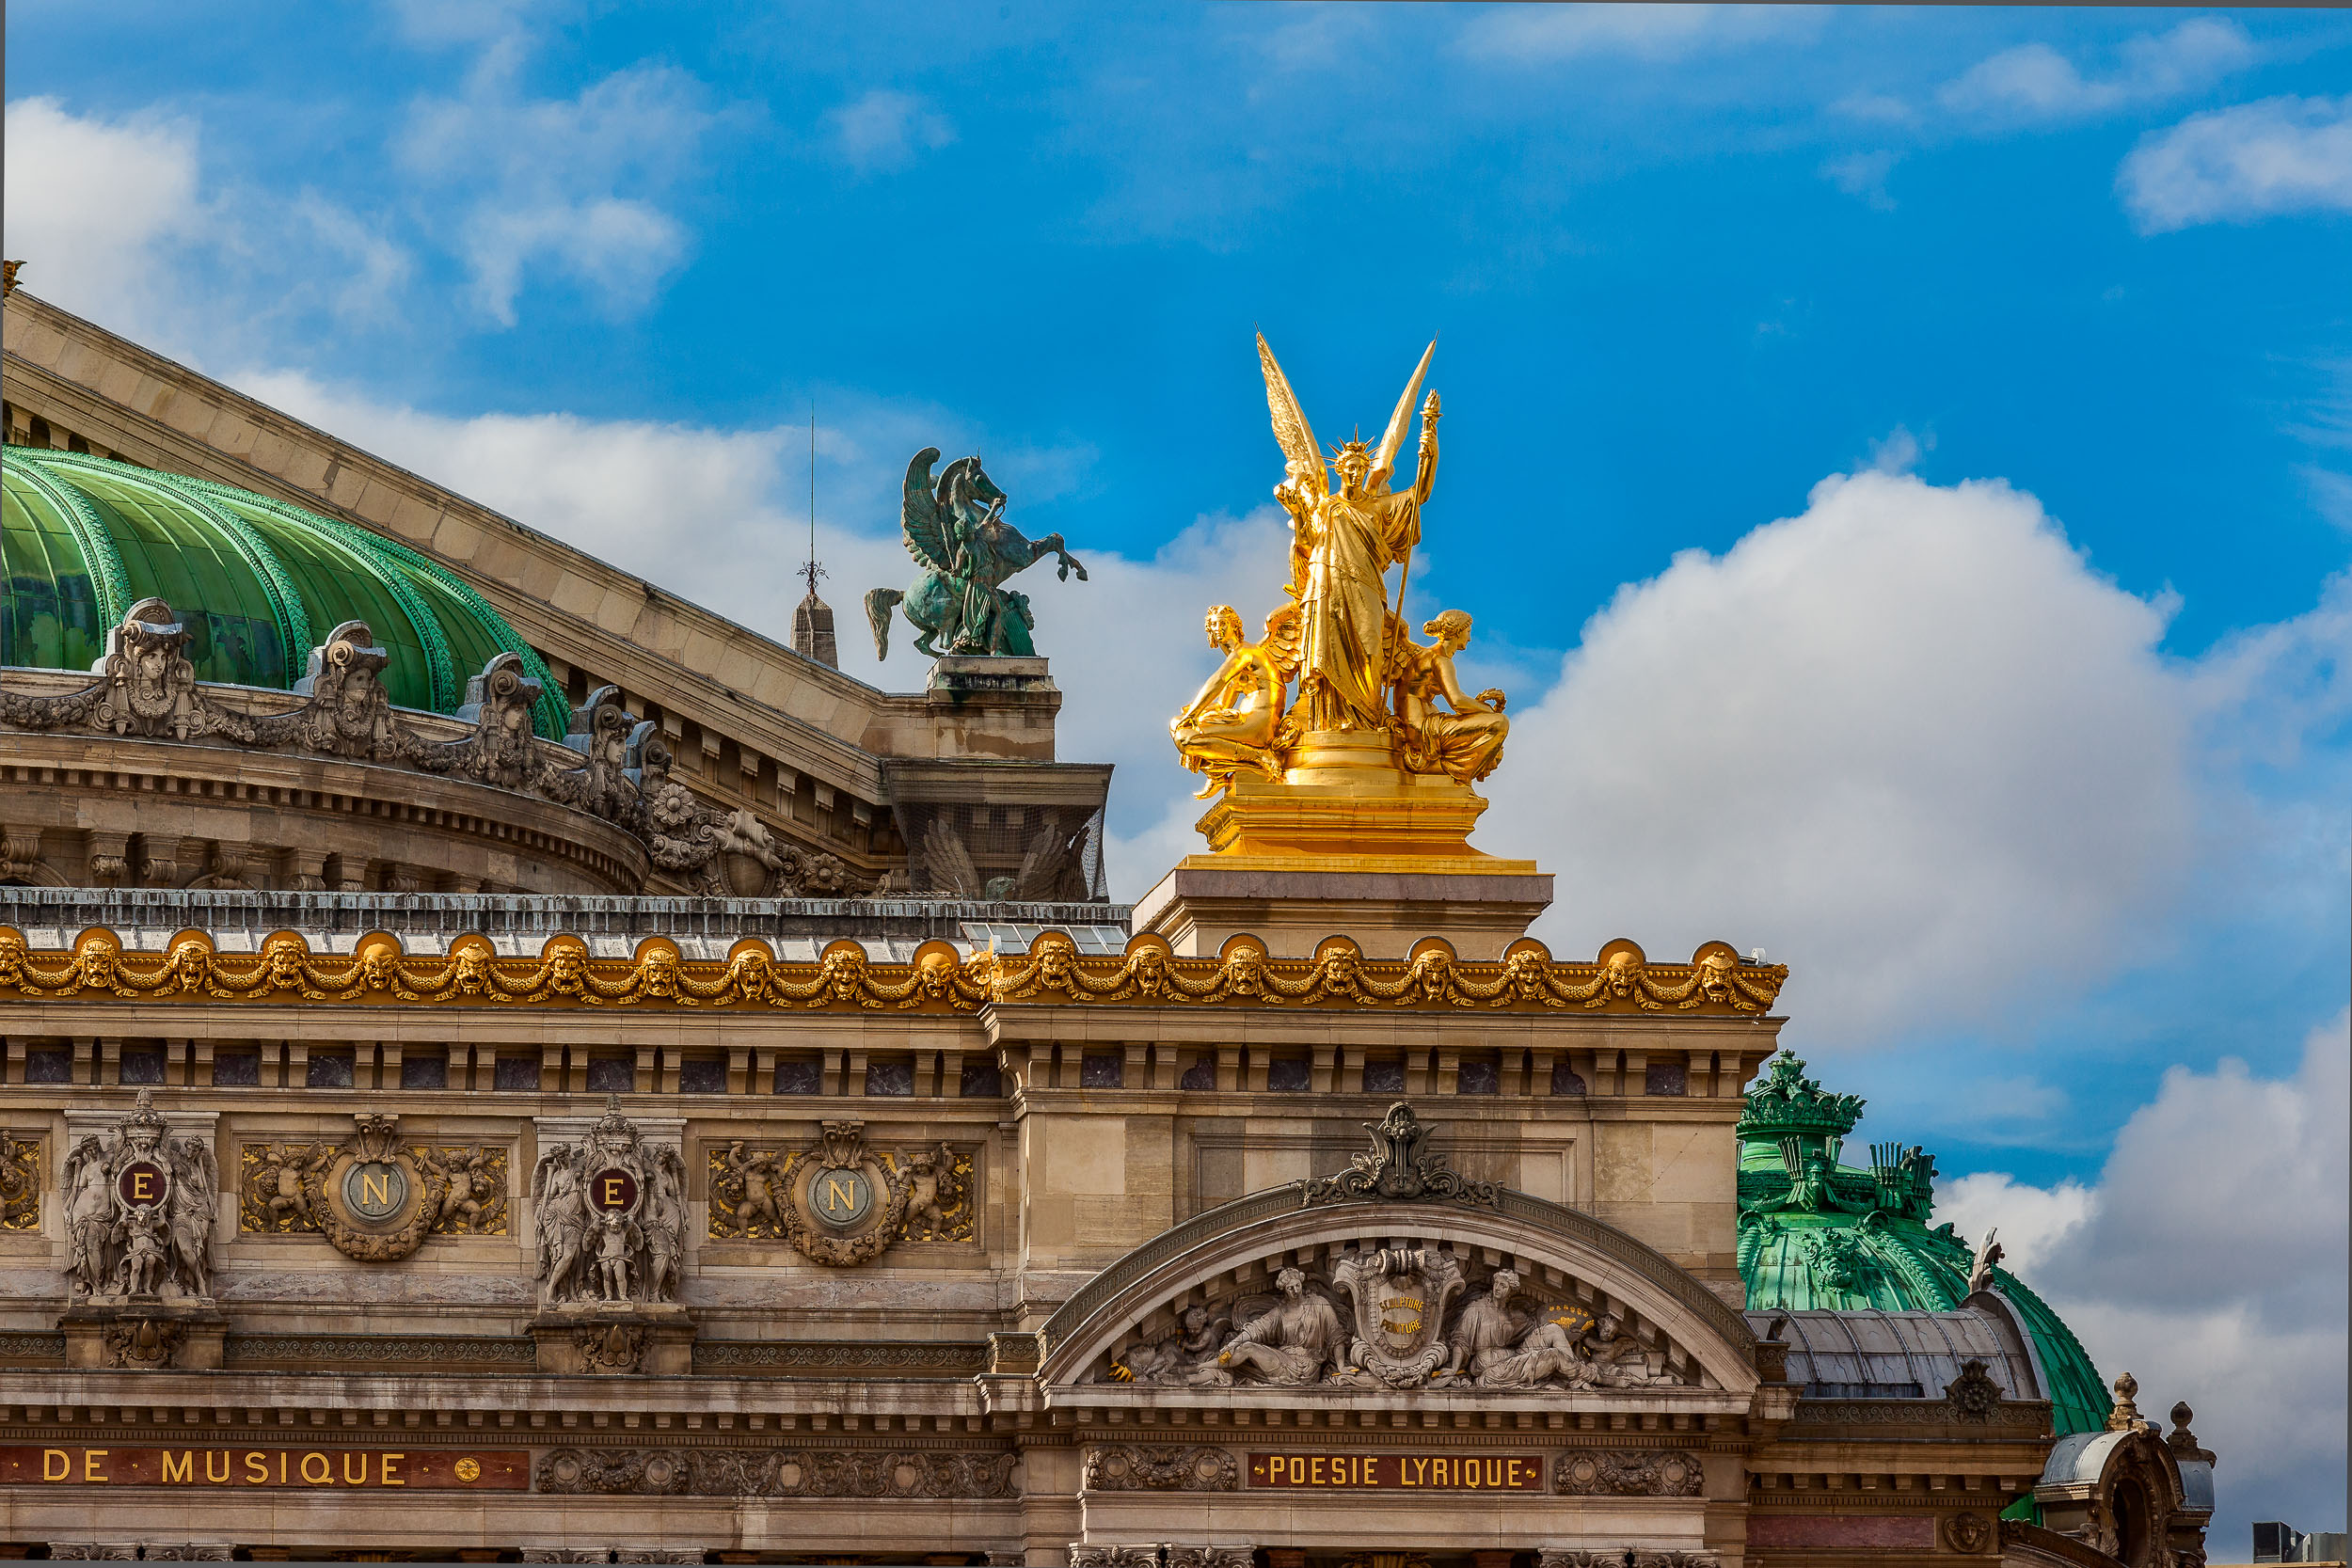 A golden angel atop the Académie de Poésie et de Musique in Paris, France